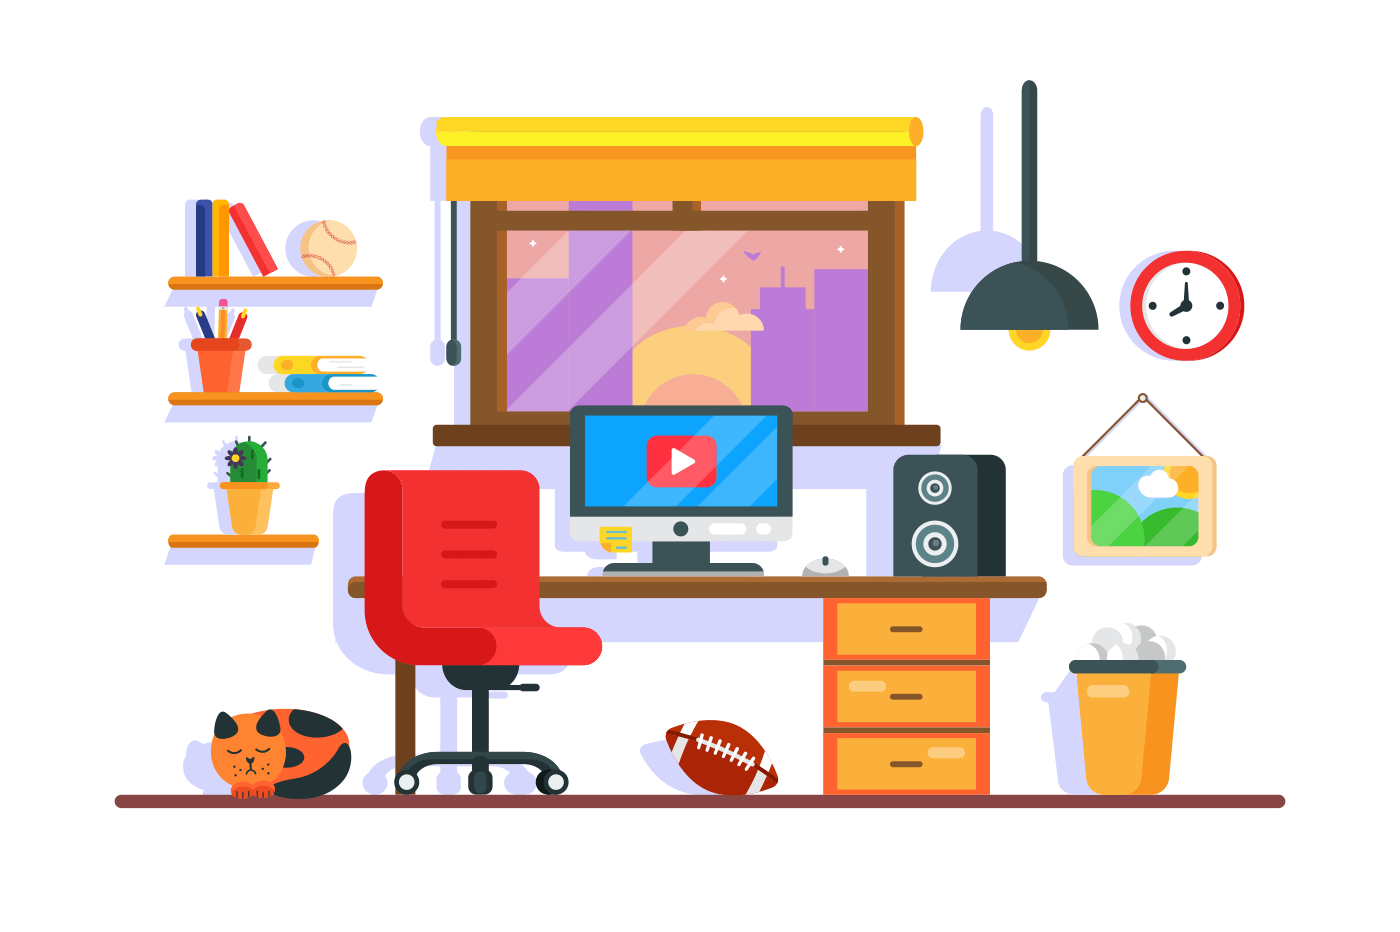 Work desk with personal accessories at home for work and relax. Concept workplace with equipment and pet, cat. Vector illustration.